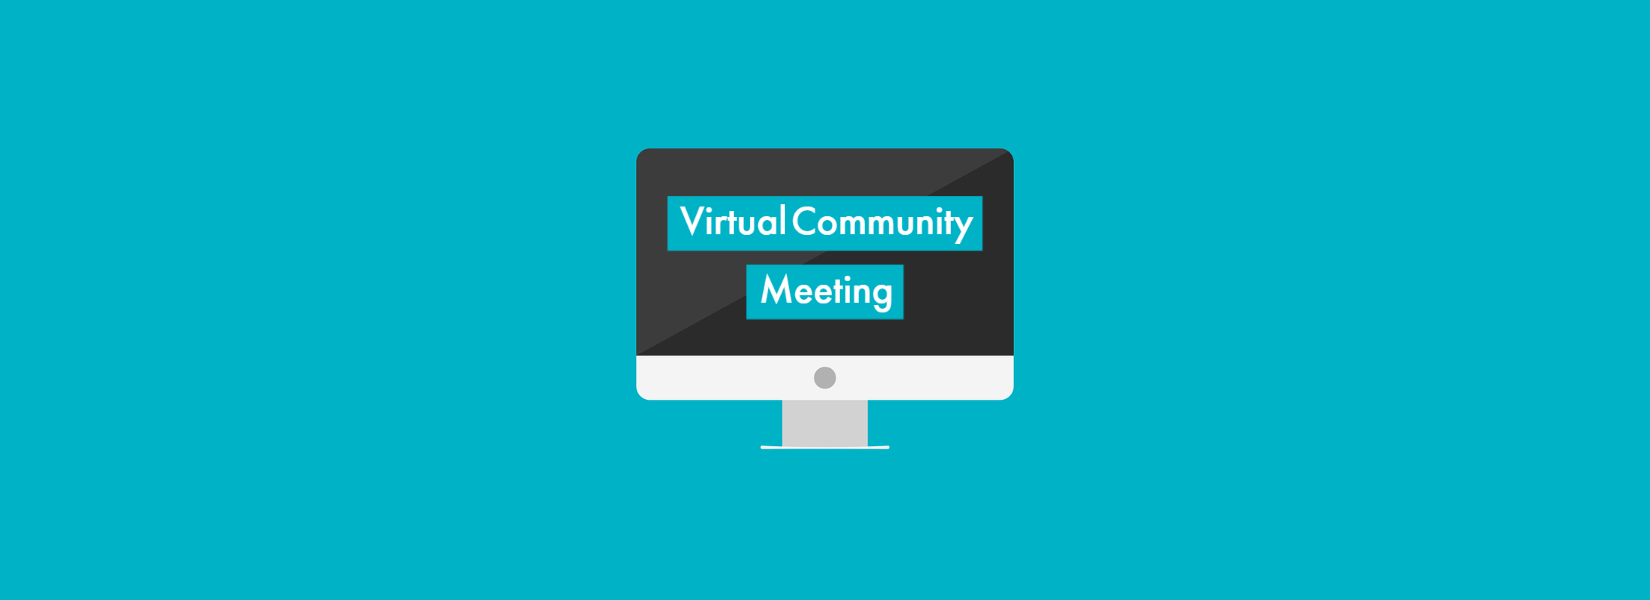 Virtual Community Meeting